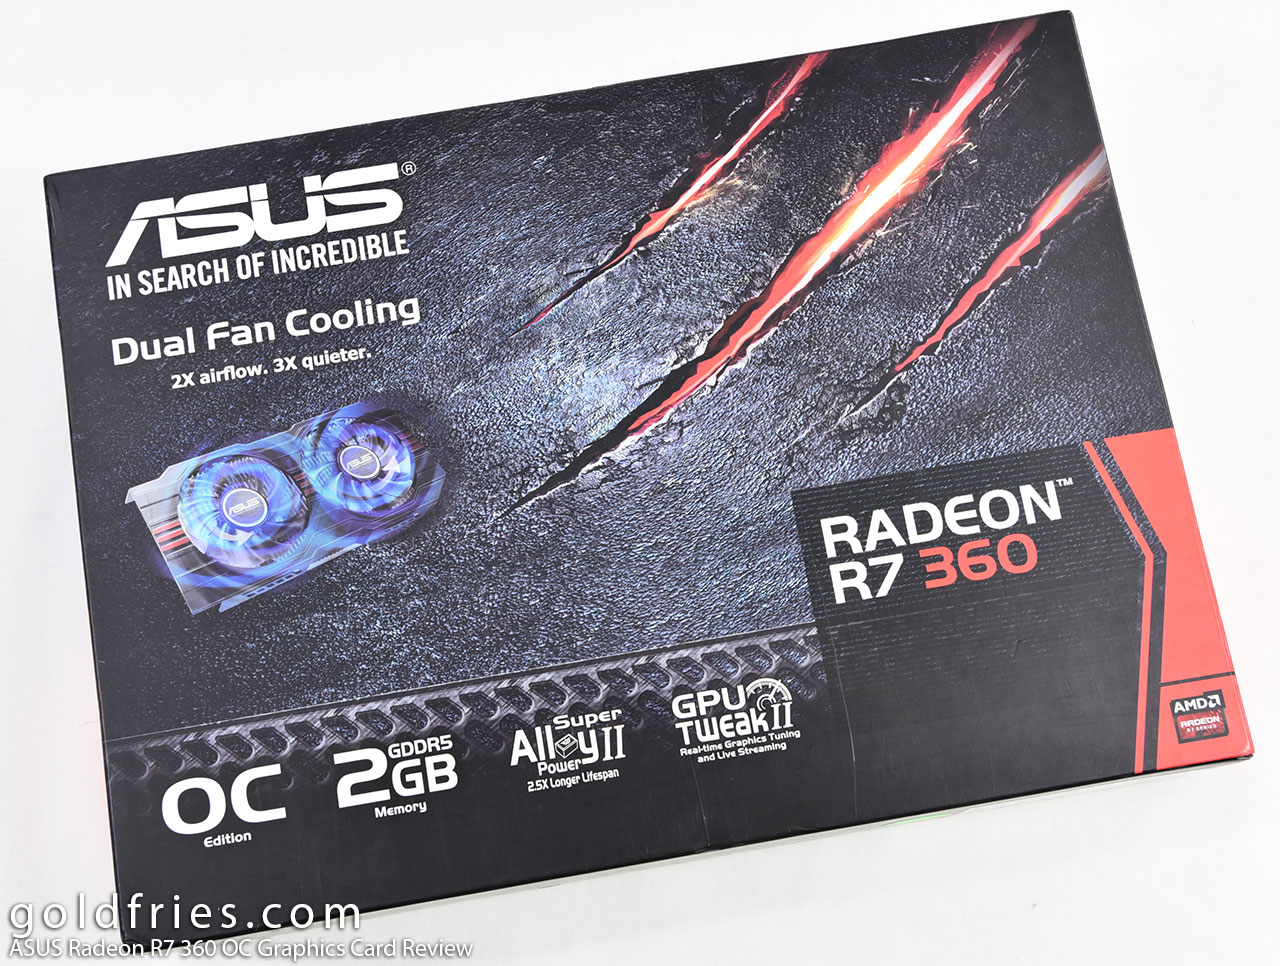 ASUS Radeon R7 360 OC Graphics Card Review